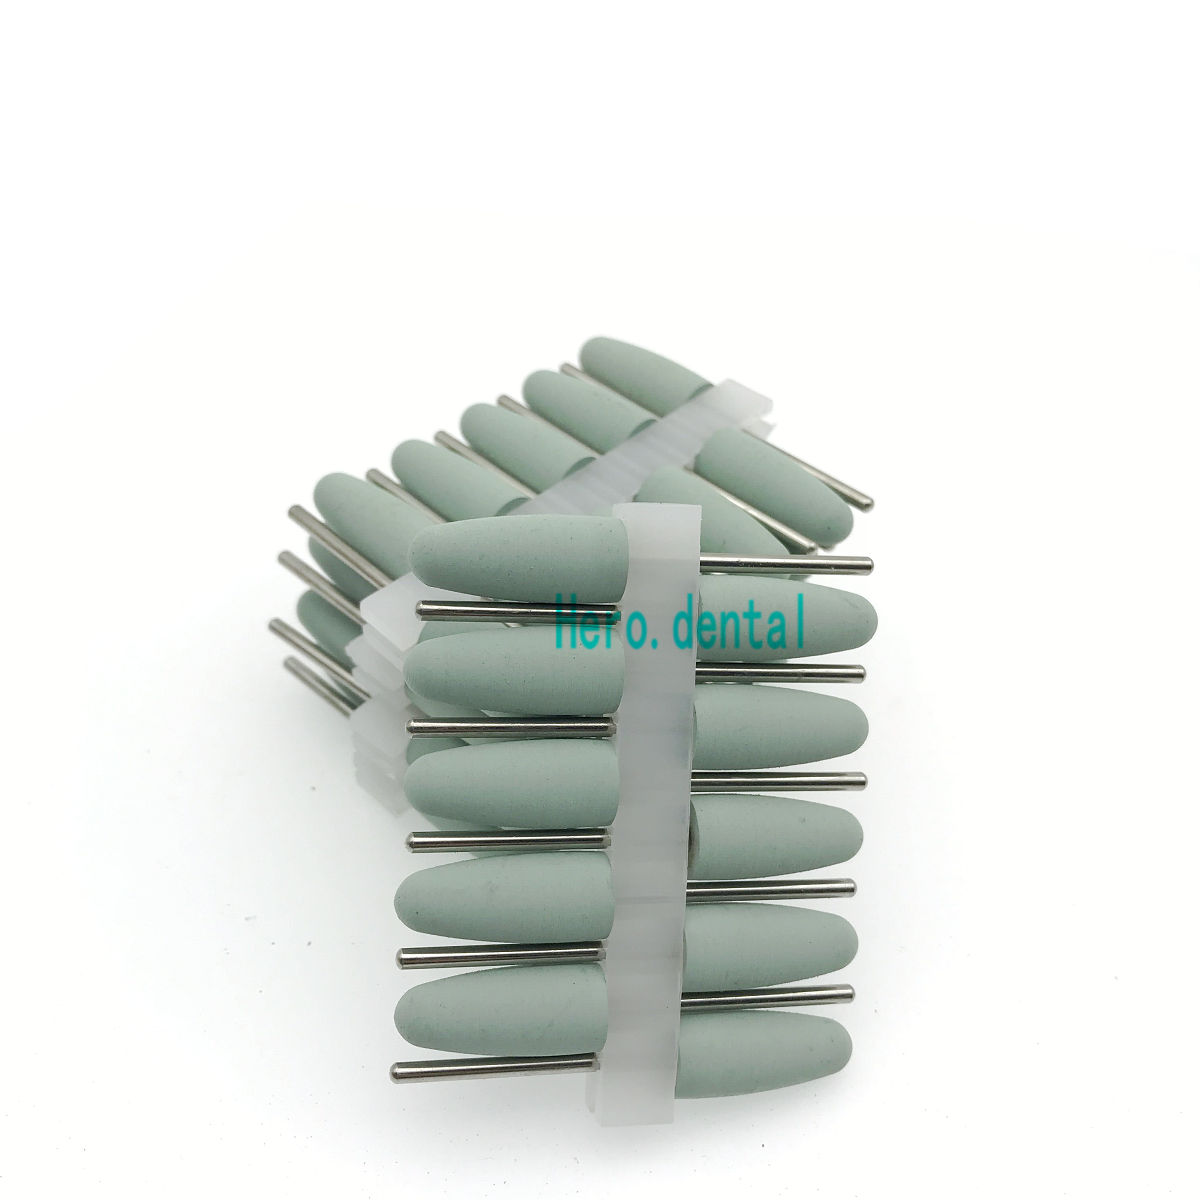 50 Pcs Silicon Rubber Polishers Dental Polishing Burs Resin Base Dental HP Burs 2.35mm Light Green